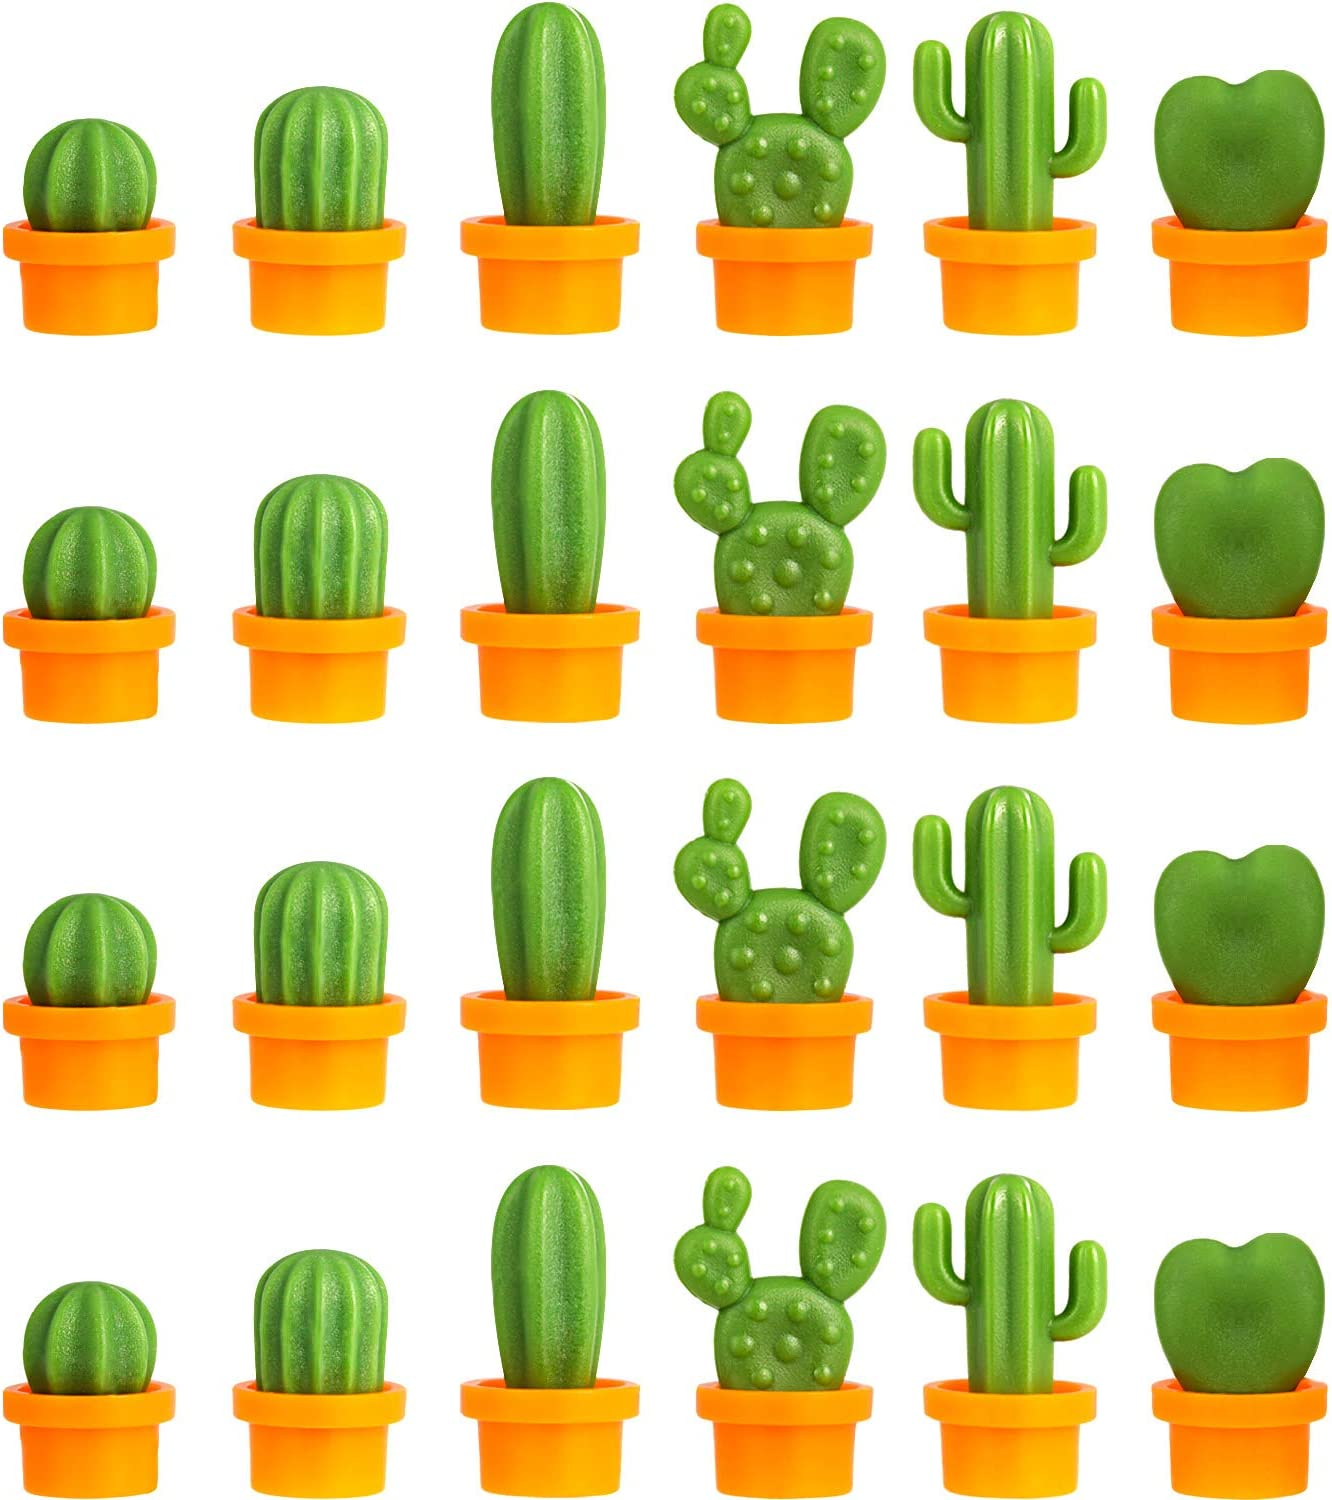 24 Pieces Cactus Refrigerator Magnets Cute Kitchen Magnets Mini Cactus Home Magnets for Home Kitchen Office Whiteboard Decoration Supplies